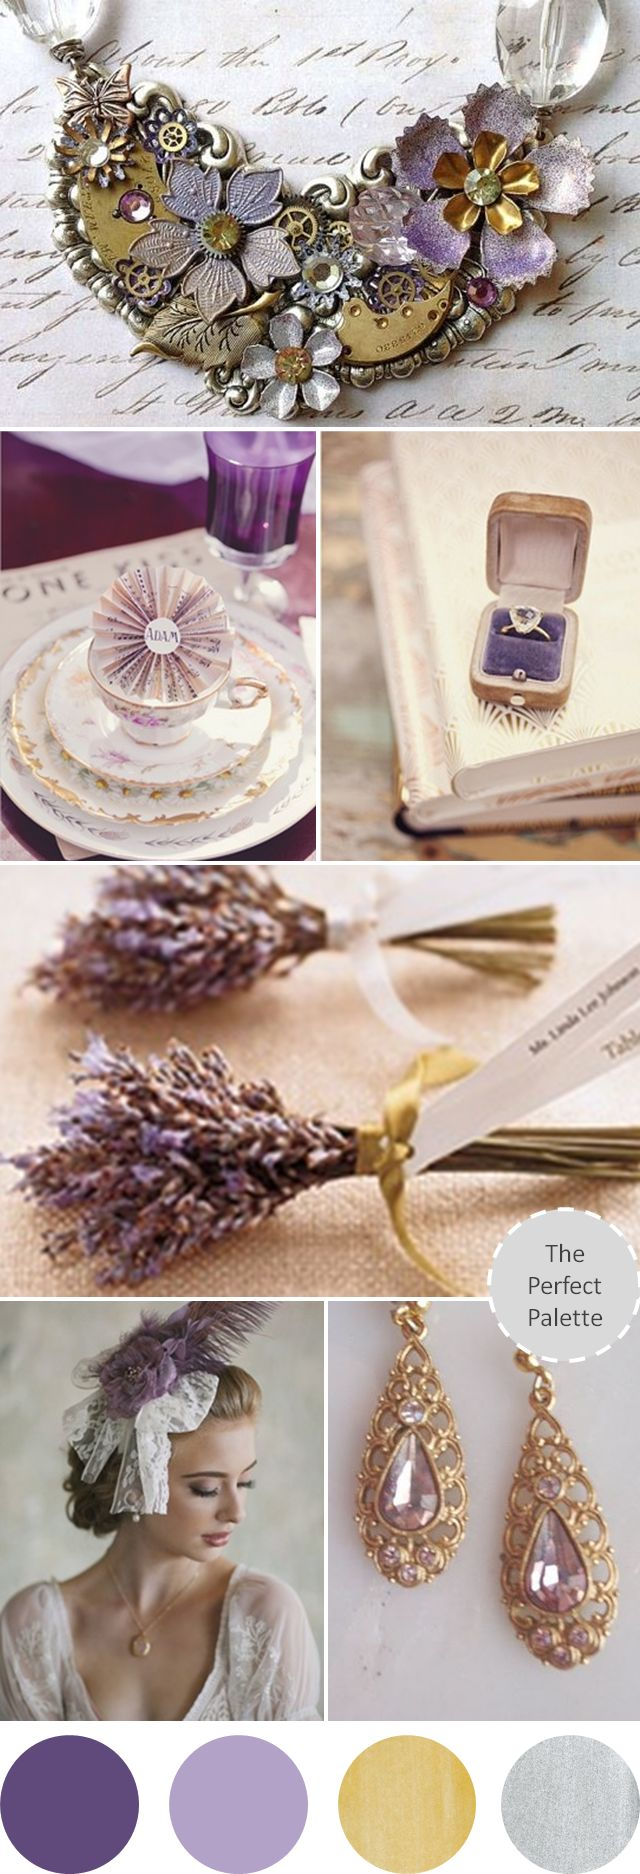 The Perfect Palette: Lavender